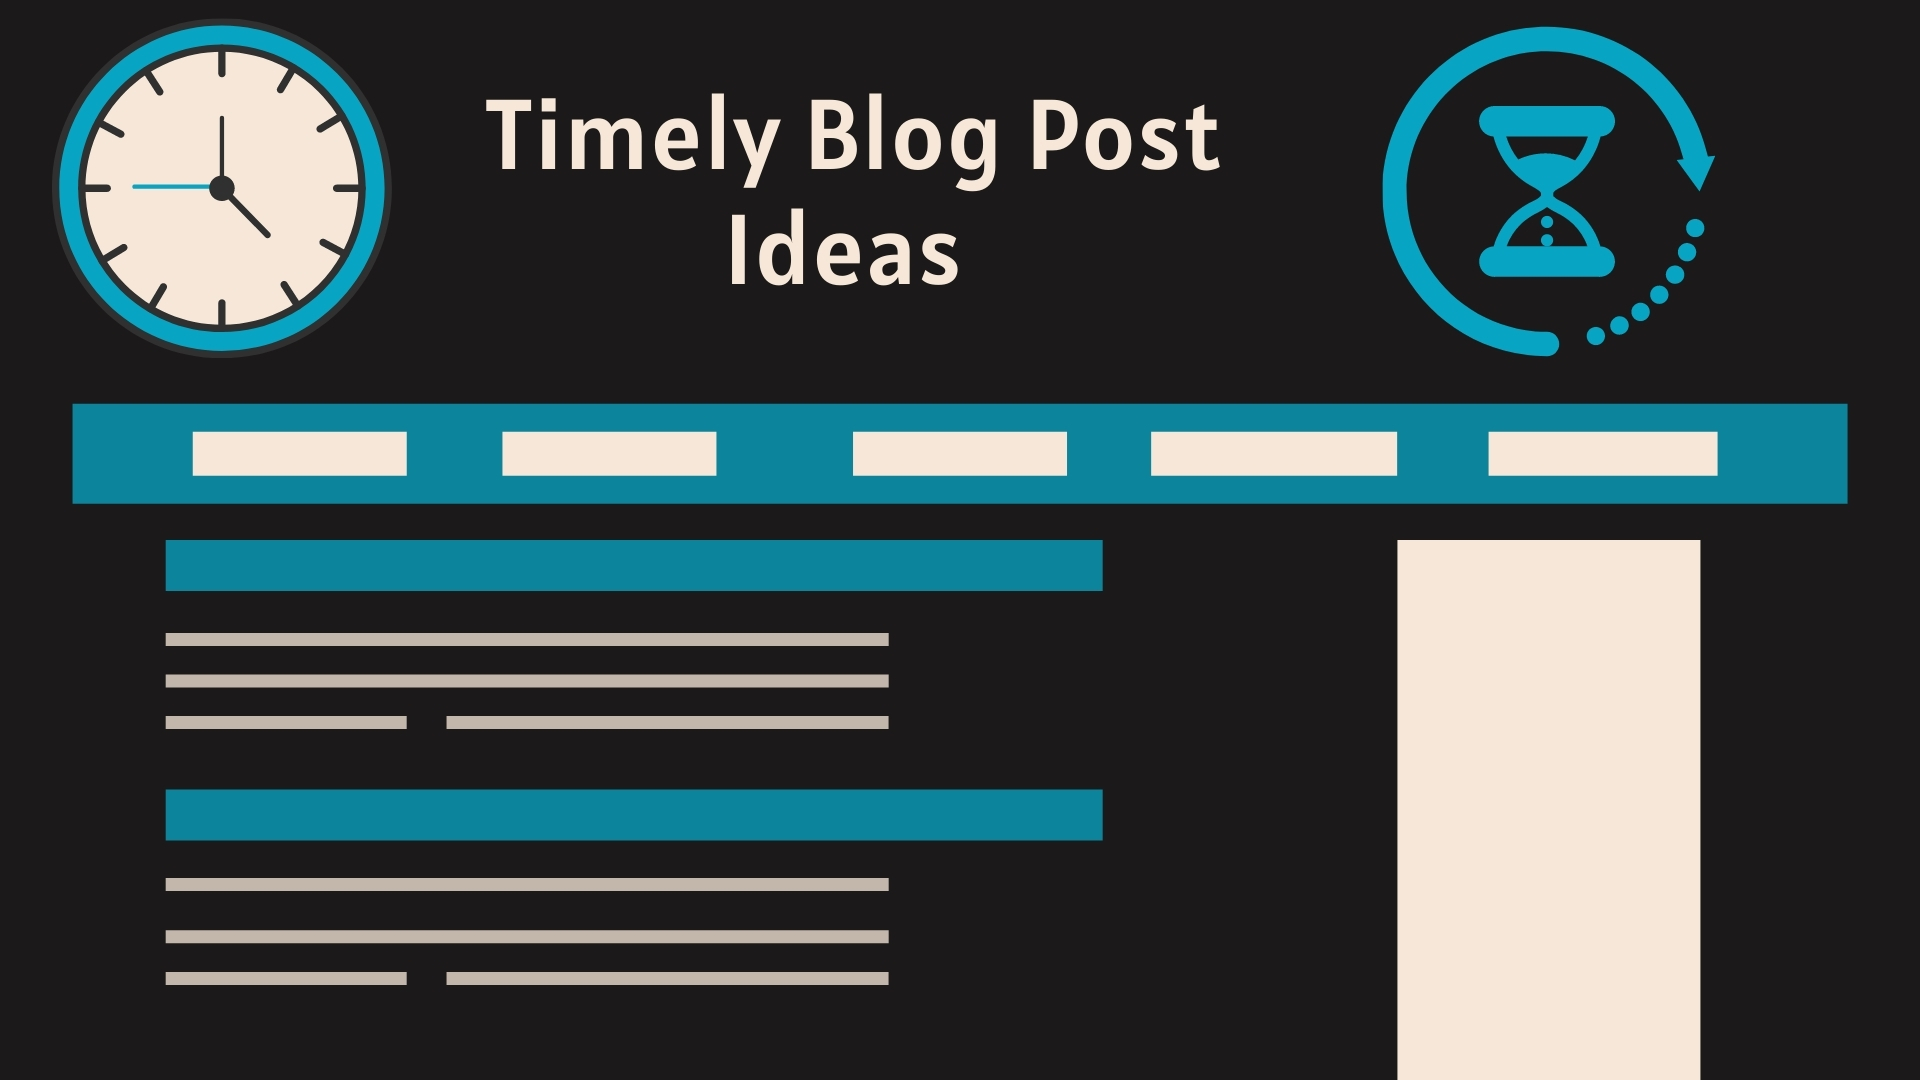 Timely Blog Post Ideas - Find Time-Sensitive Blog Topic Ideas and Blog Post Ideas to Write About